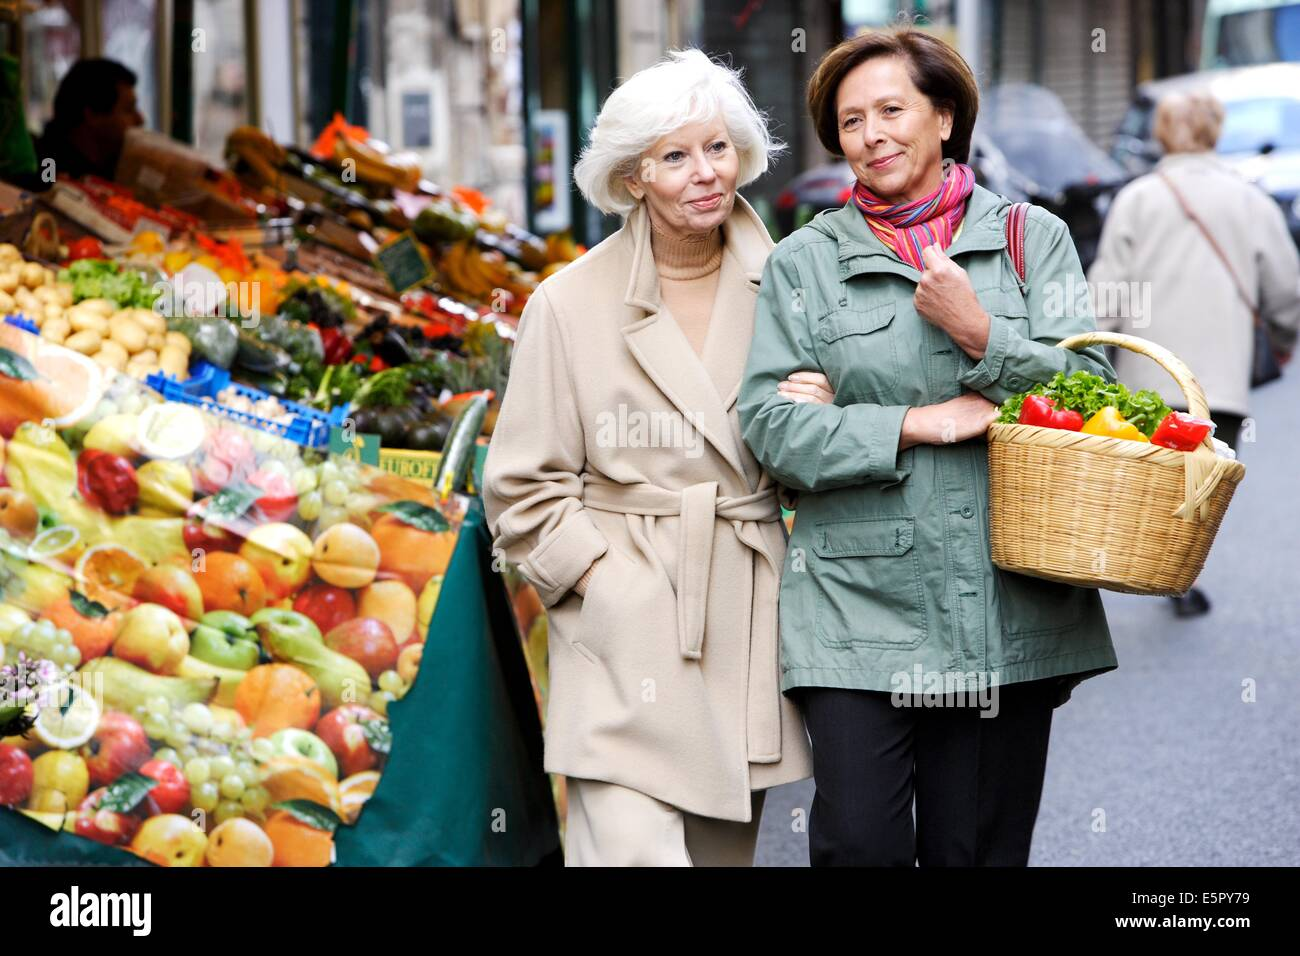 Woman and elderly woman shopping for fruits. - Stock Image